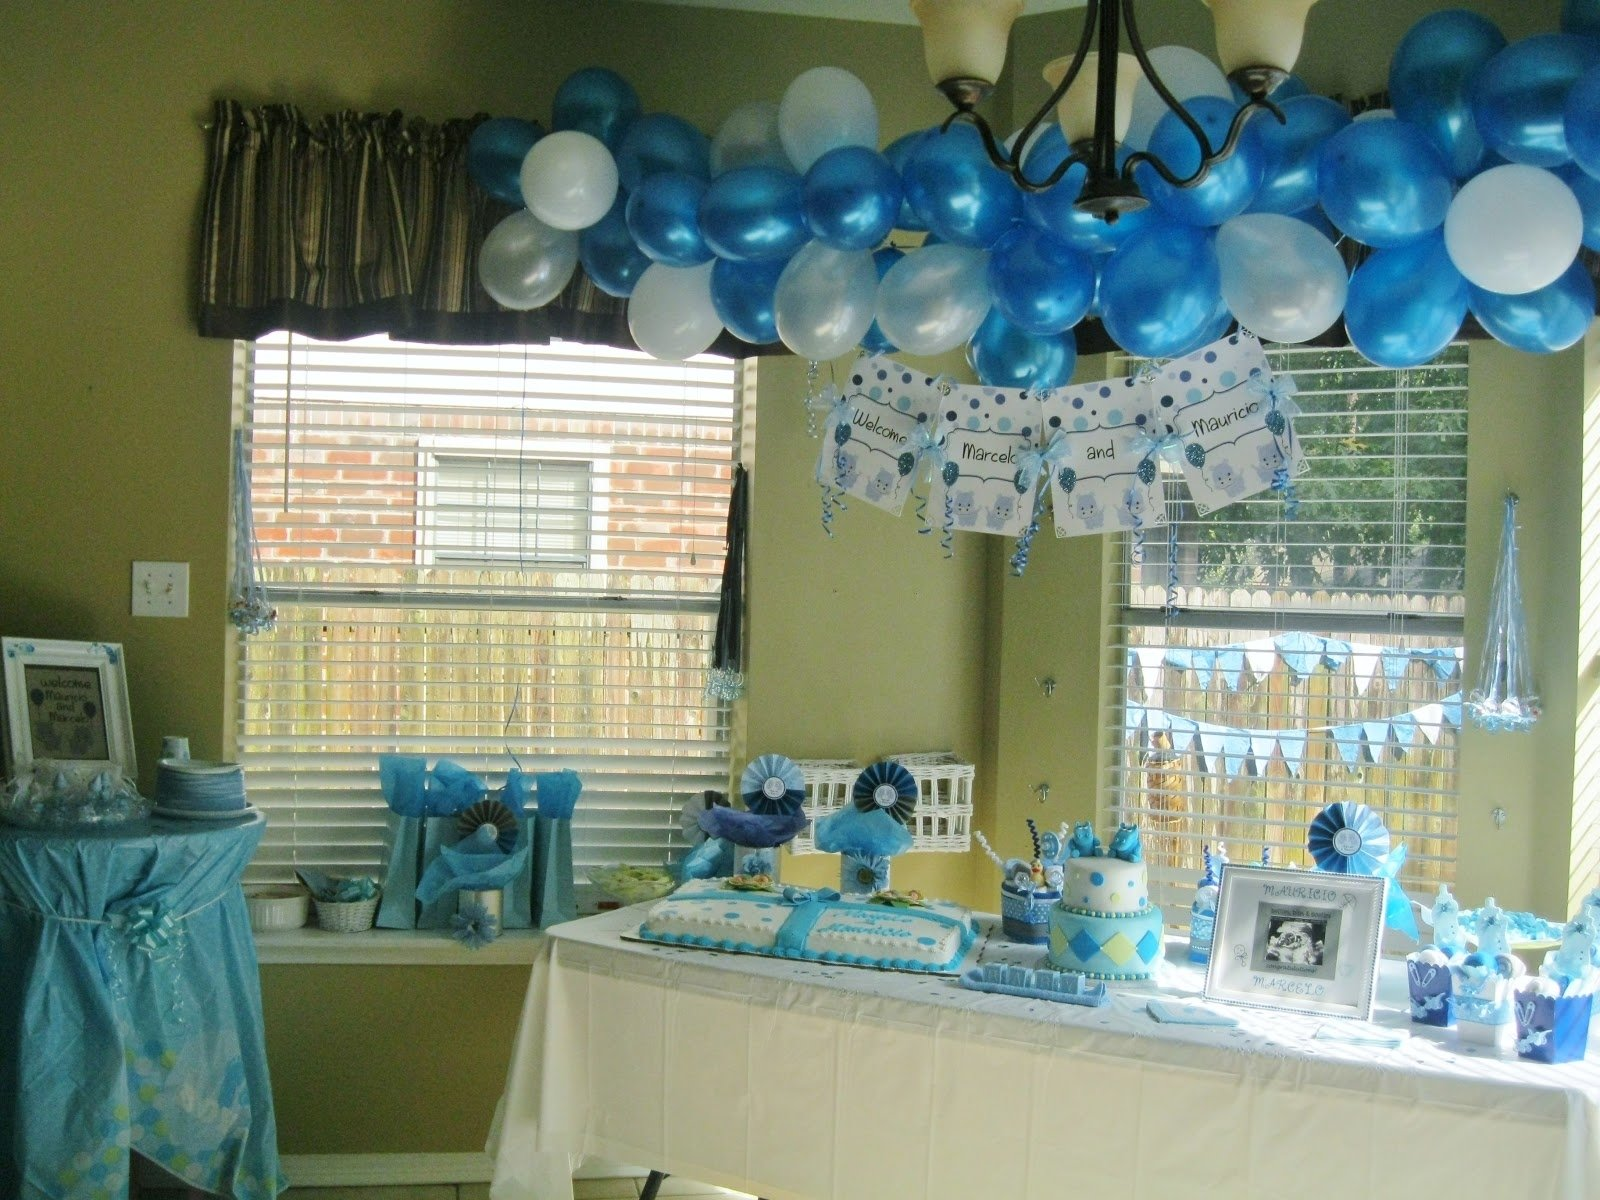 10 Elegant Baby Shower Decoration Ideas For Boys elephant baby shower decorations cakes excerpt boy themes loversiq 2